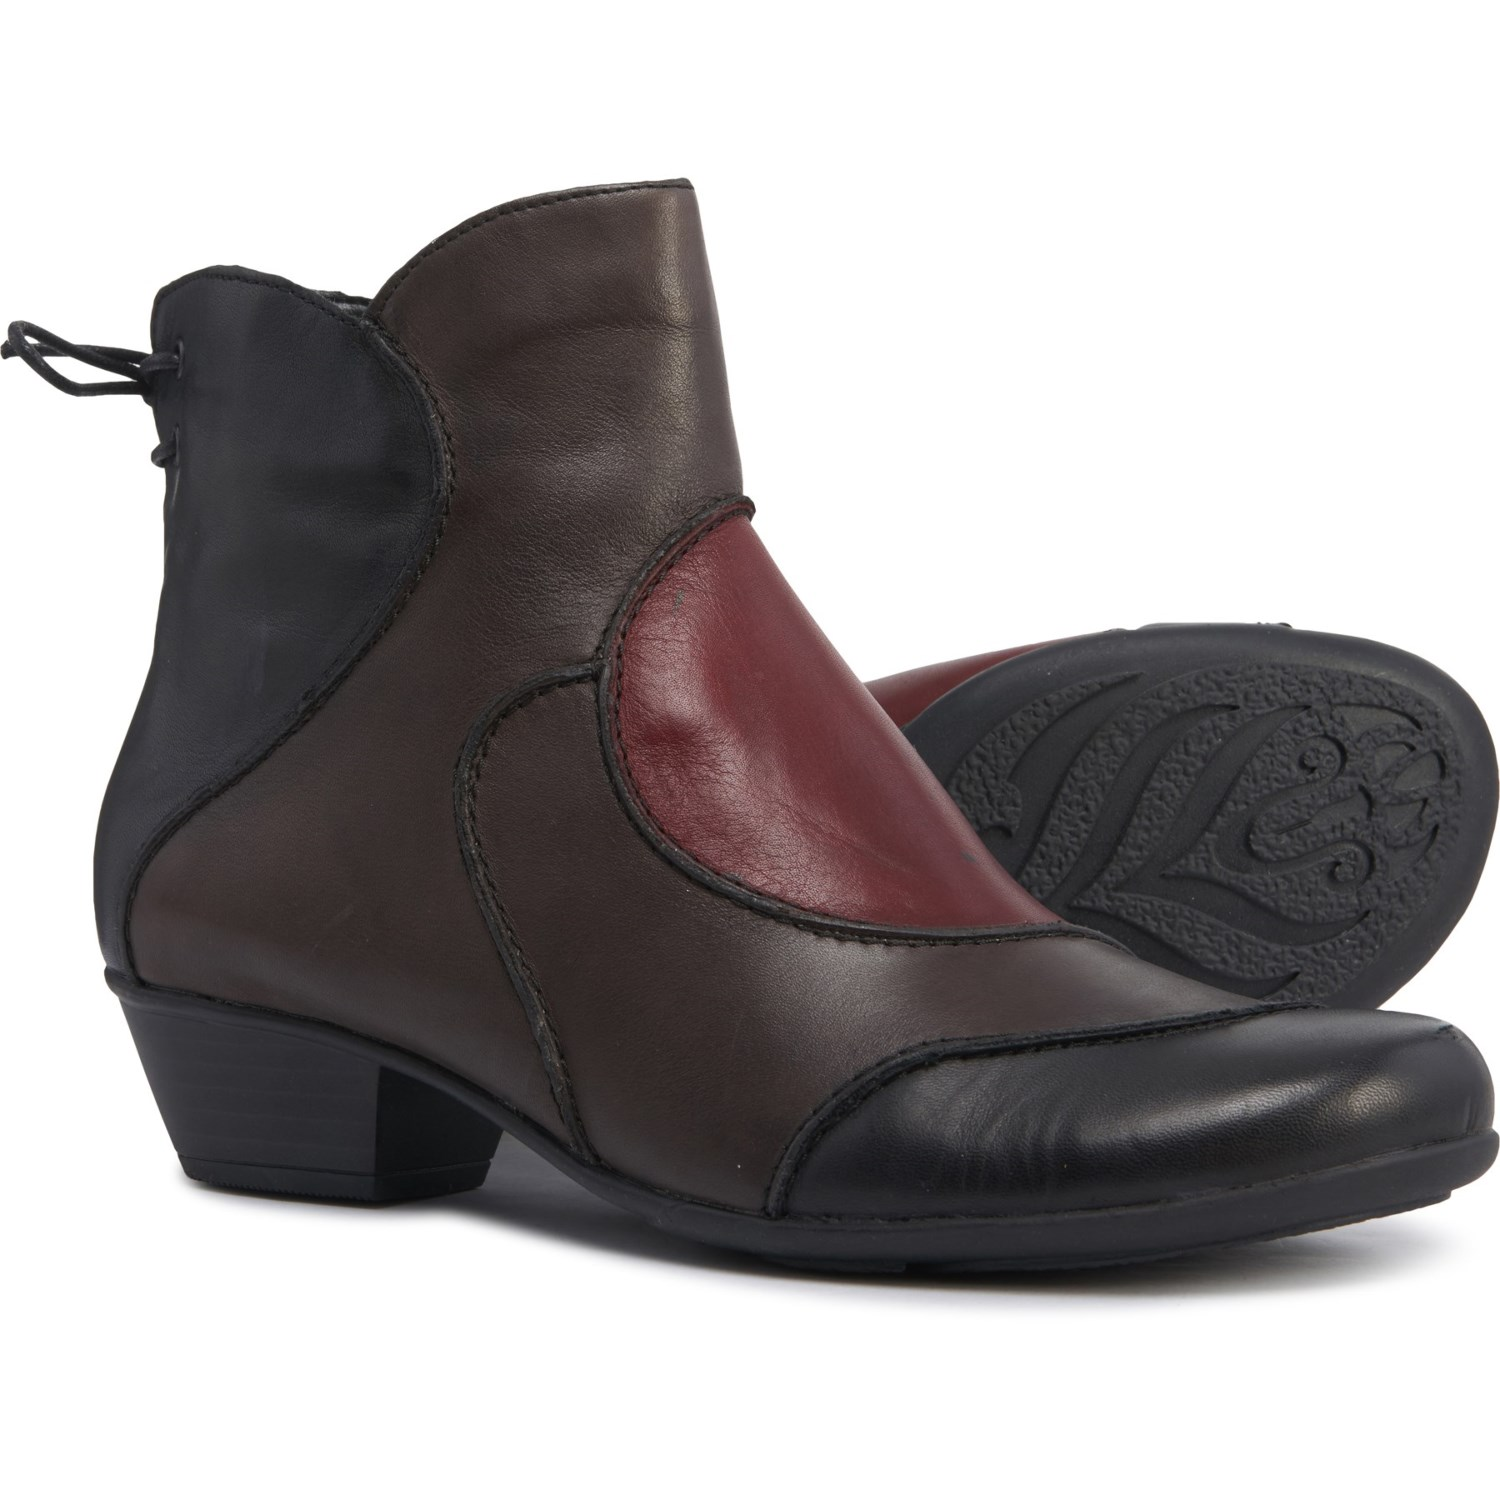 Remonte Milla 80 Ankle Boots Leather (For Women)